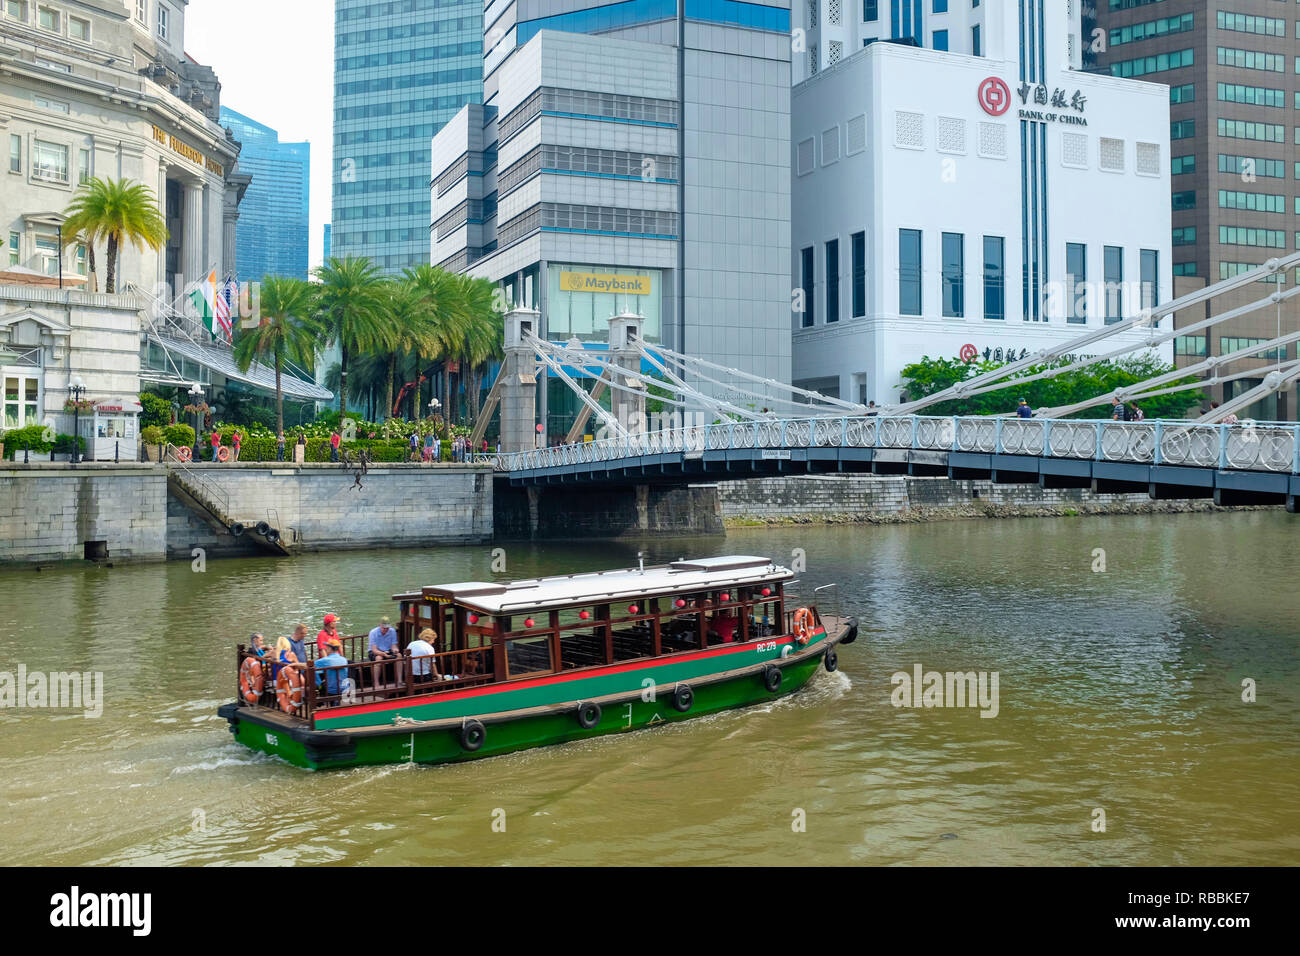 Cavenagh Bridge on the Singapore River and the Central Business District, Singapore, Asia. - Stock Image